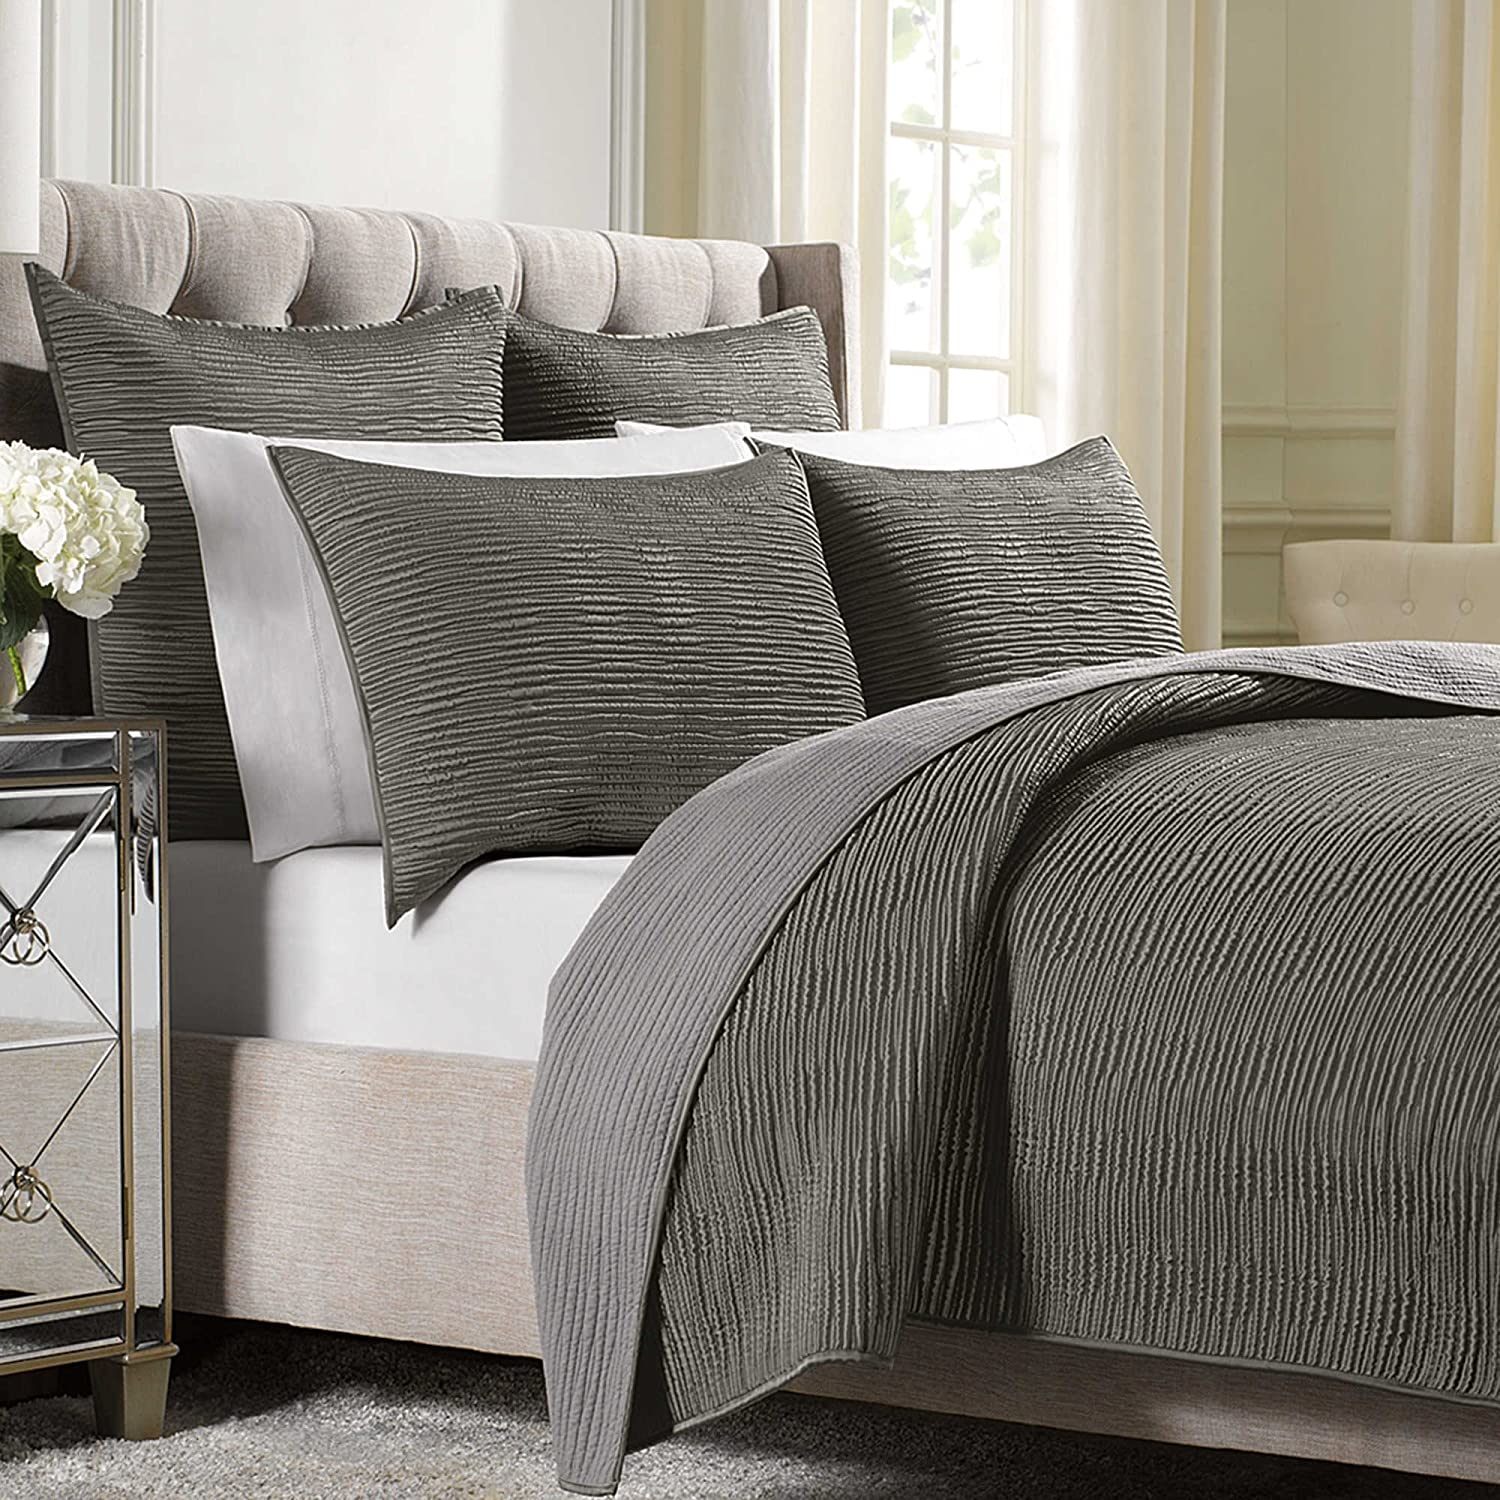 Wamsutta Serenity Full Queen Coverlet (Mink)